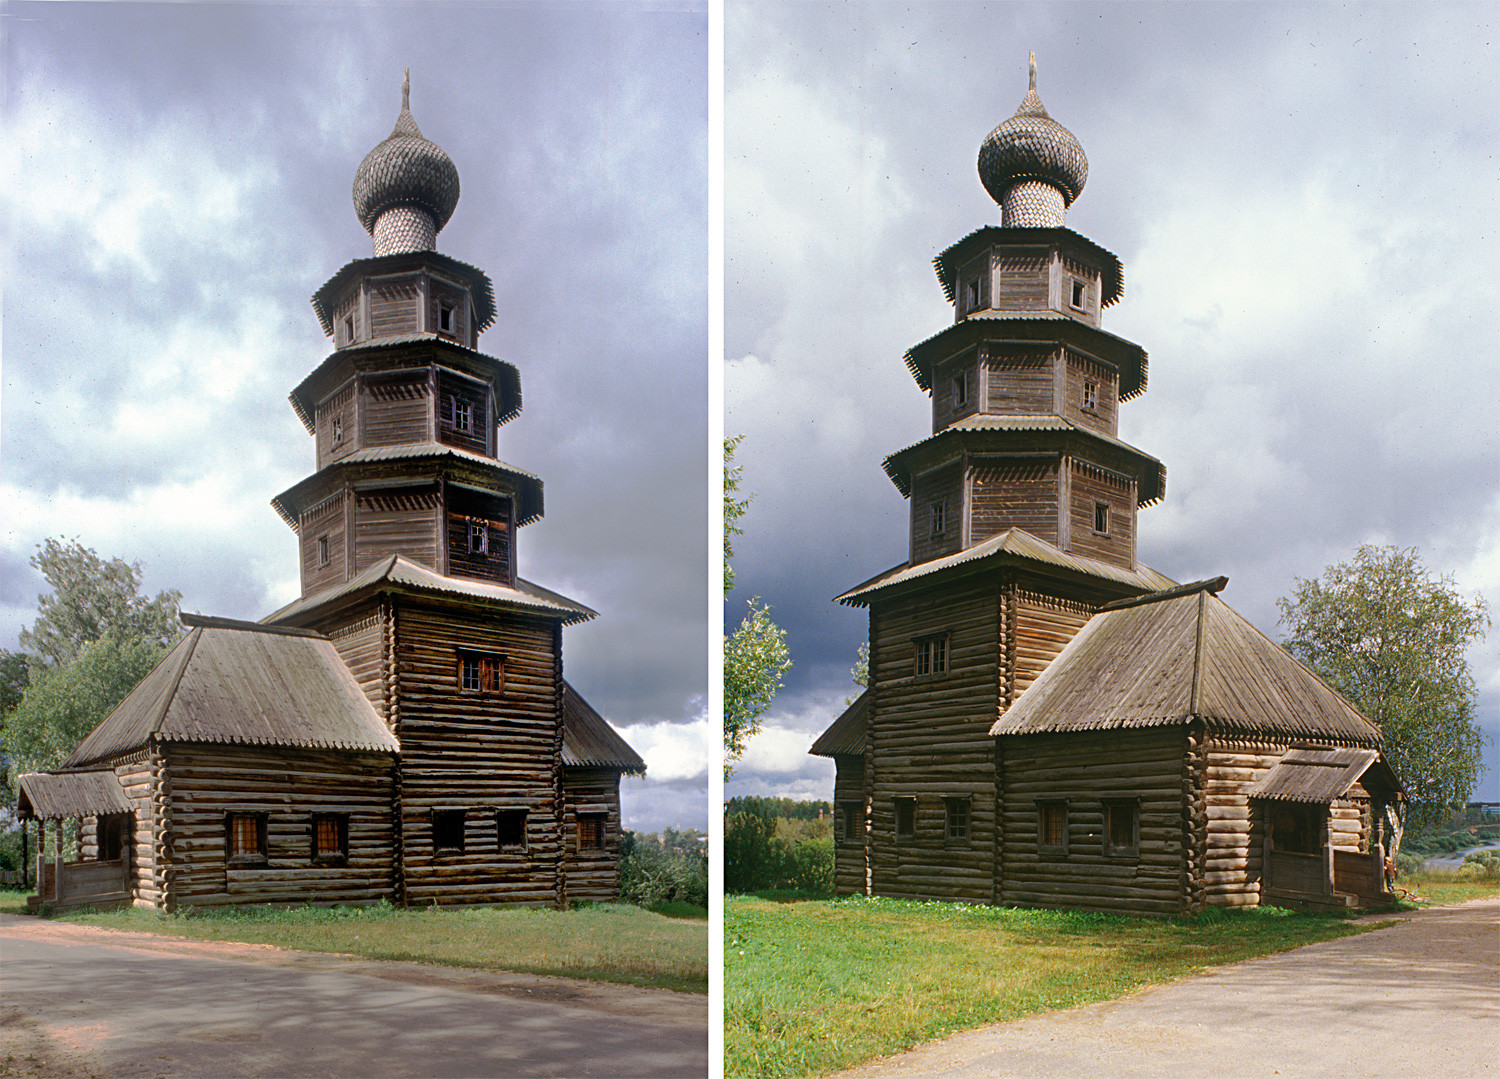 Church of the Tikhvin Icon (Old Church of the Ascension), southwest and northwest views. Aug. 13, 1995.